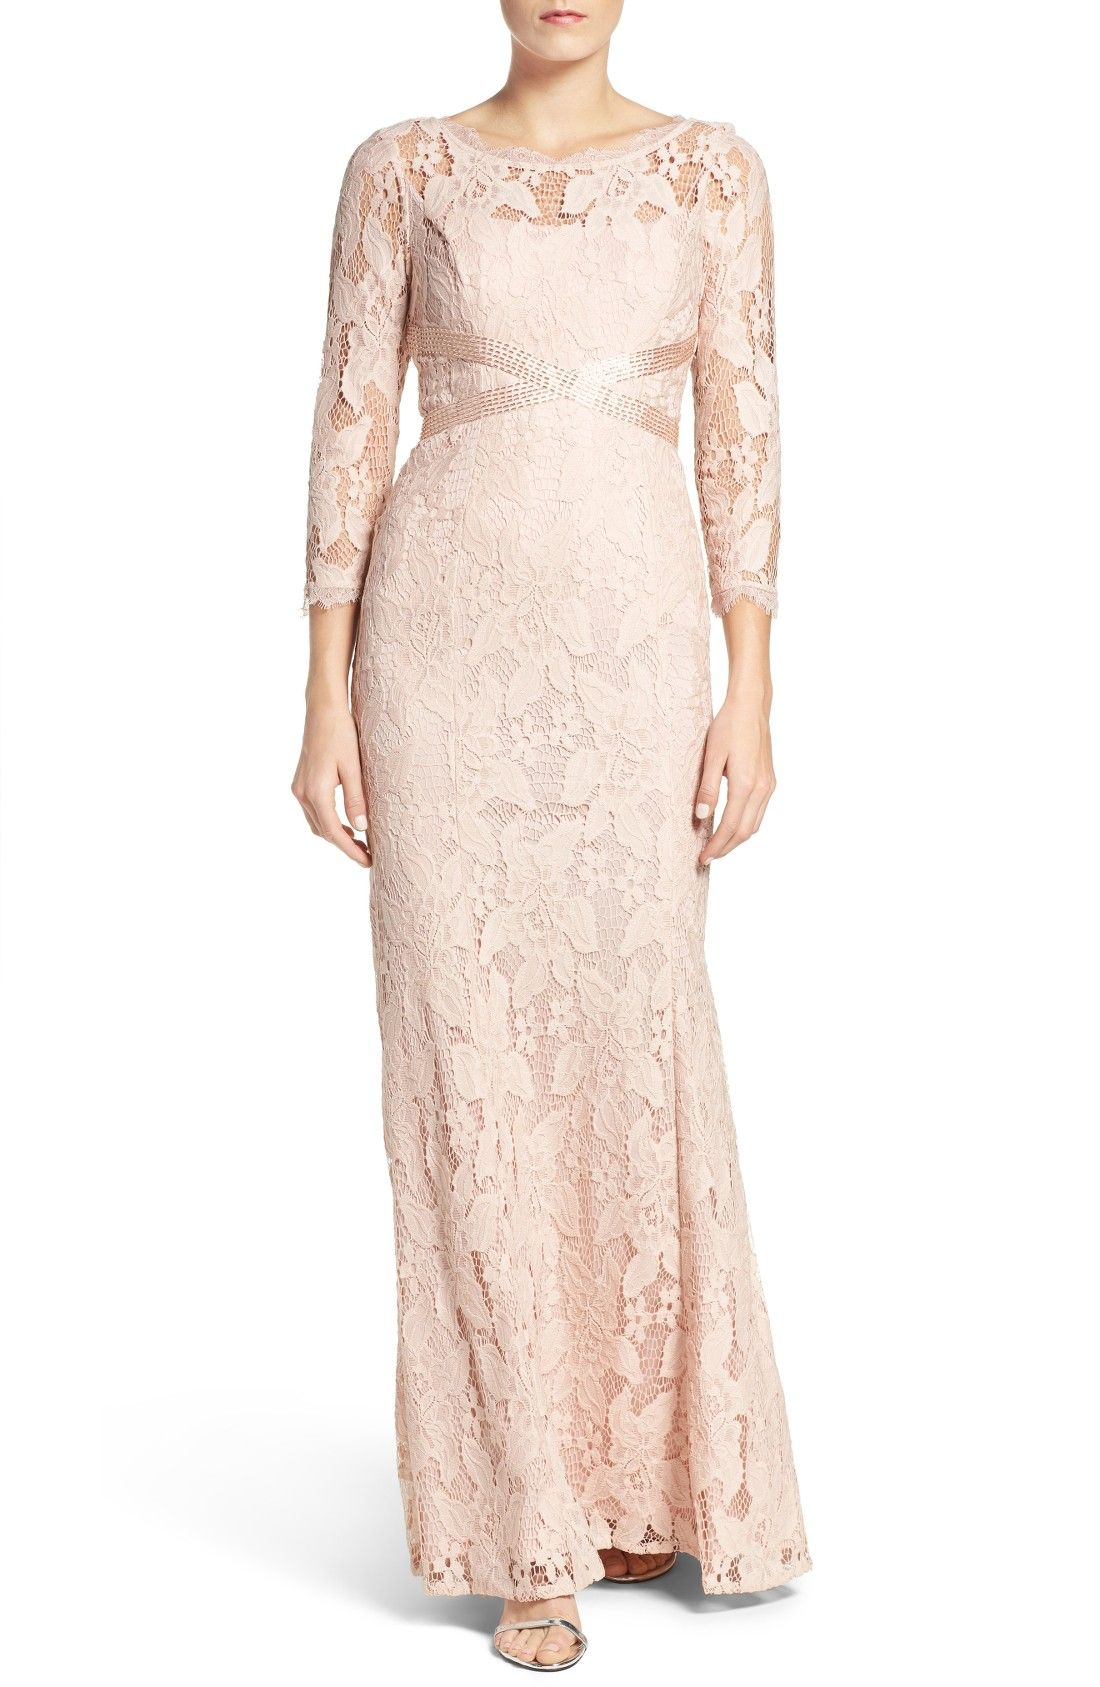 Beautiful lace dresses for mother of the bride